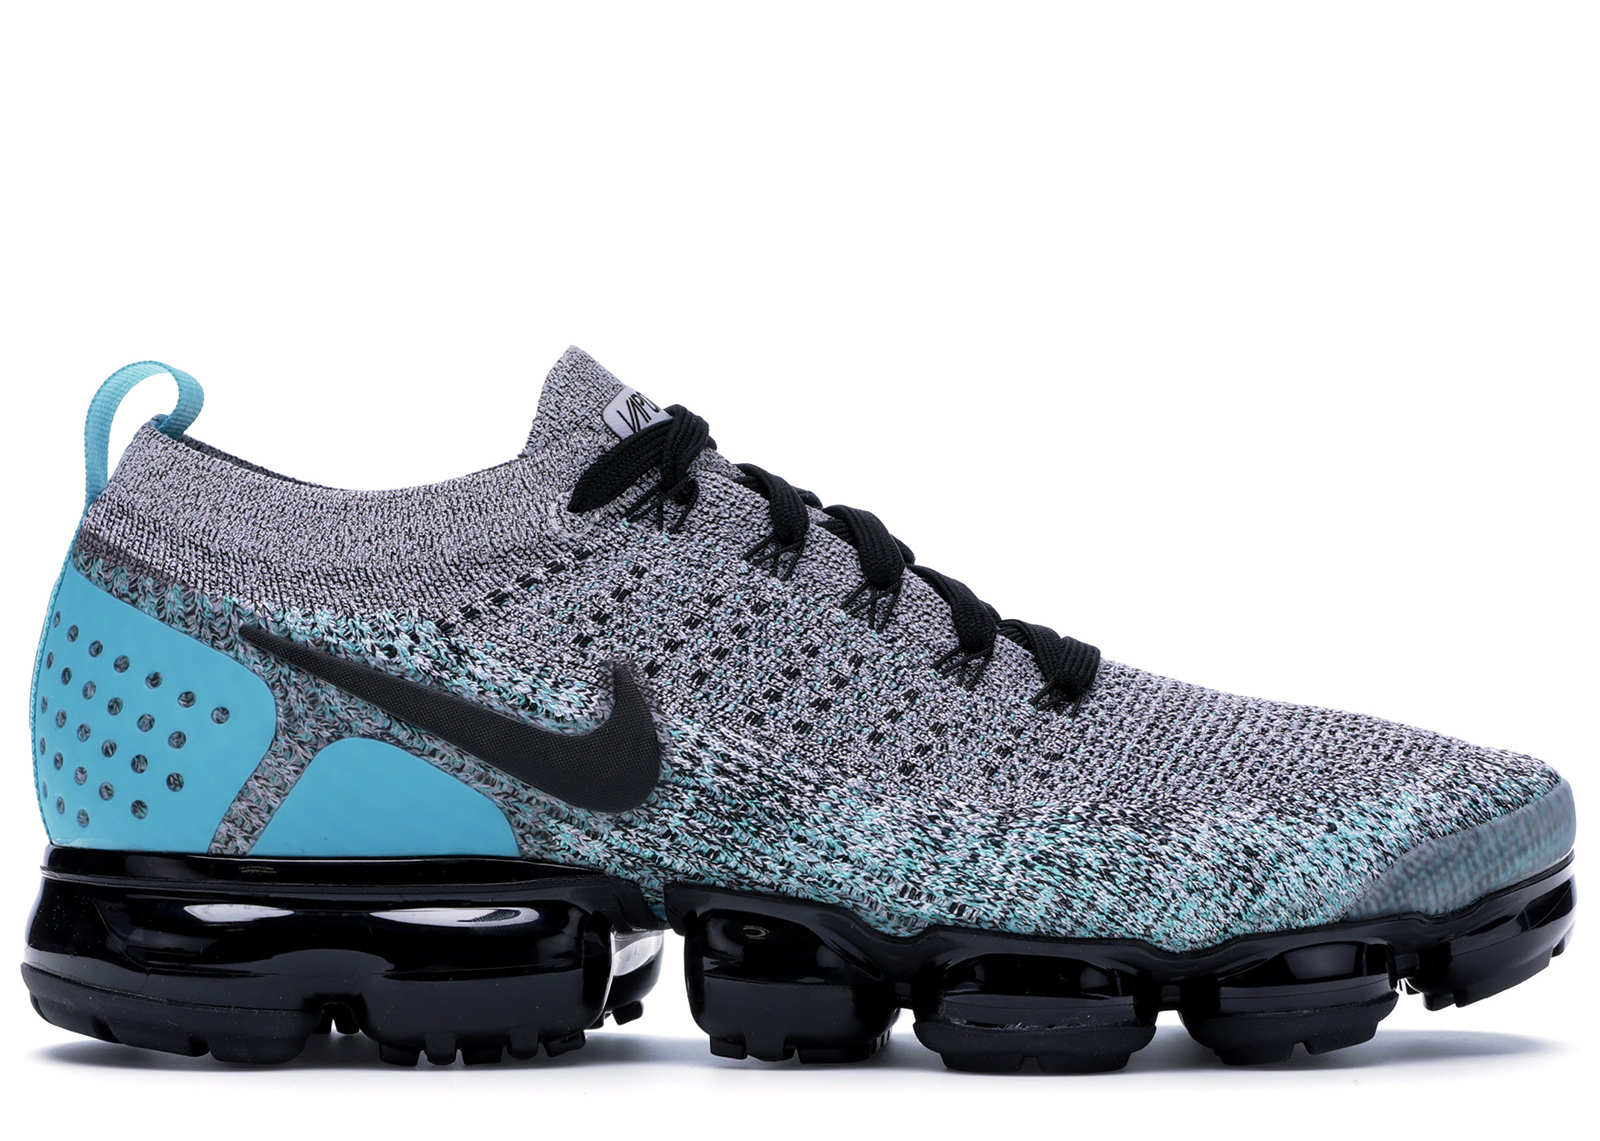 5aac389d85a9 Nike-Air-VaporMax-2-Dusty-Cactus-Hyper-Jade-Product.jpg